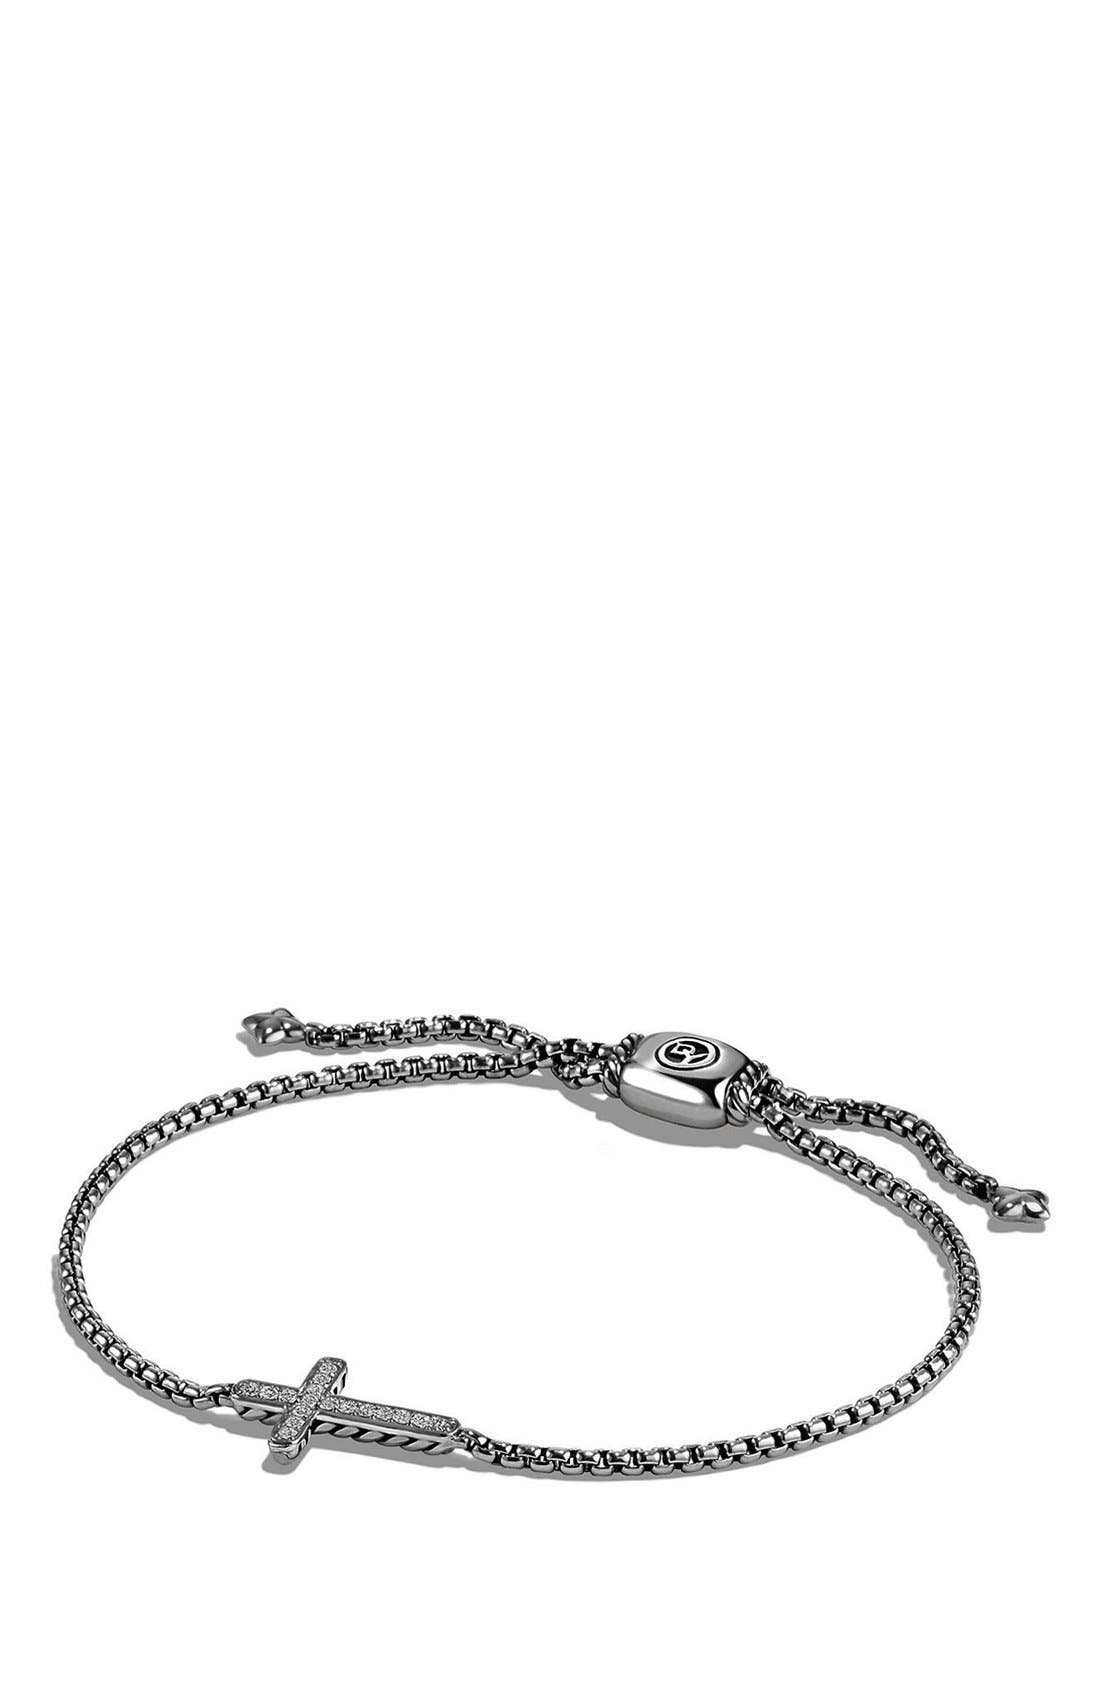 DAVID YURMAN Petite Pavé Cross Bracelet with Diamonds